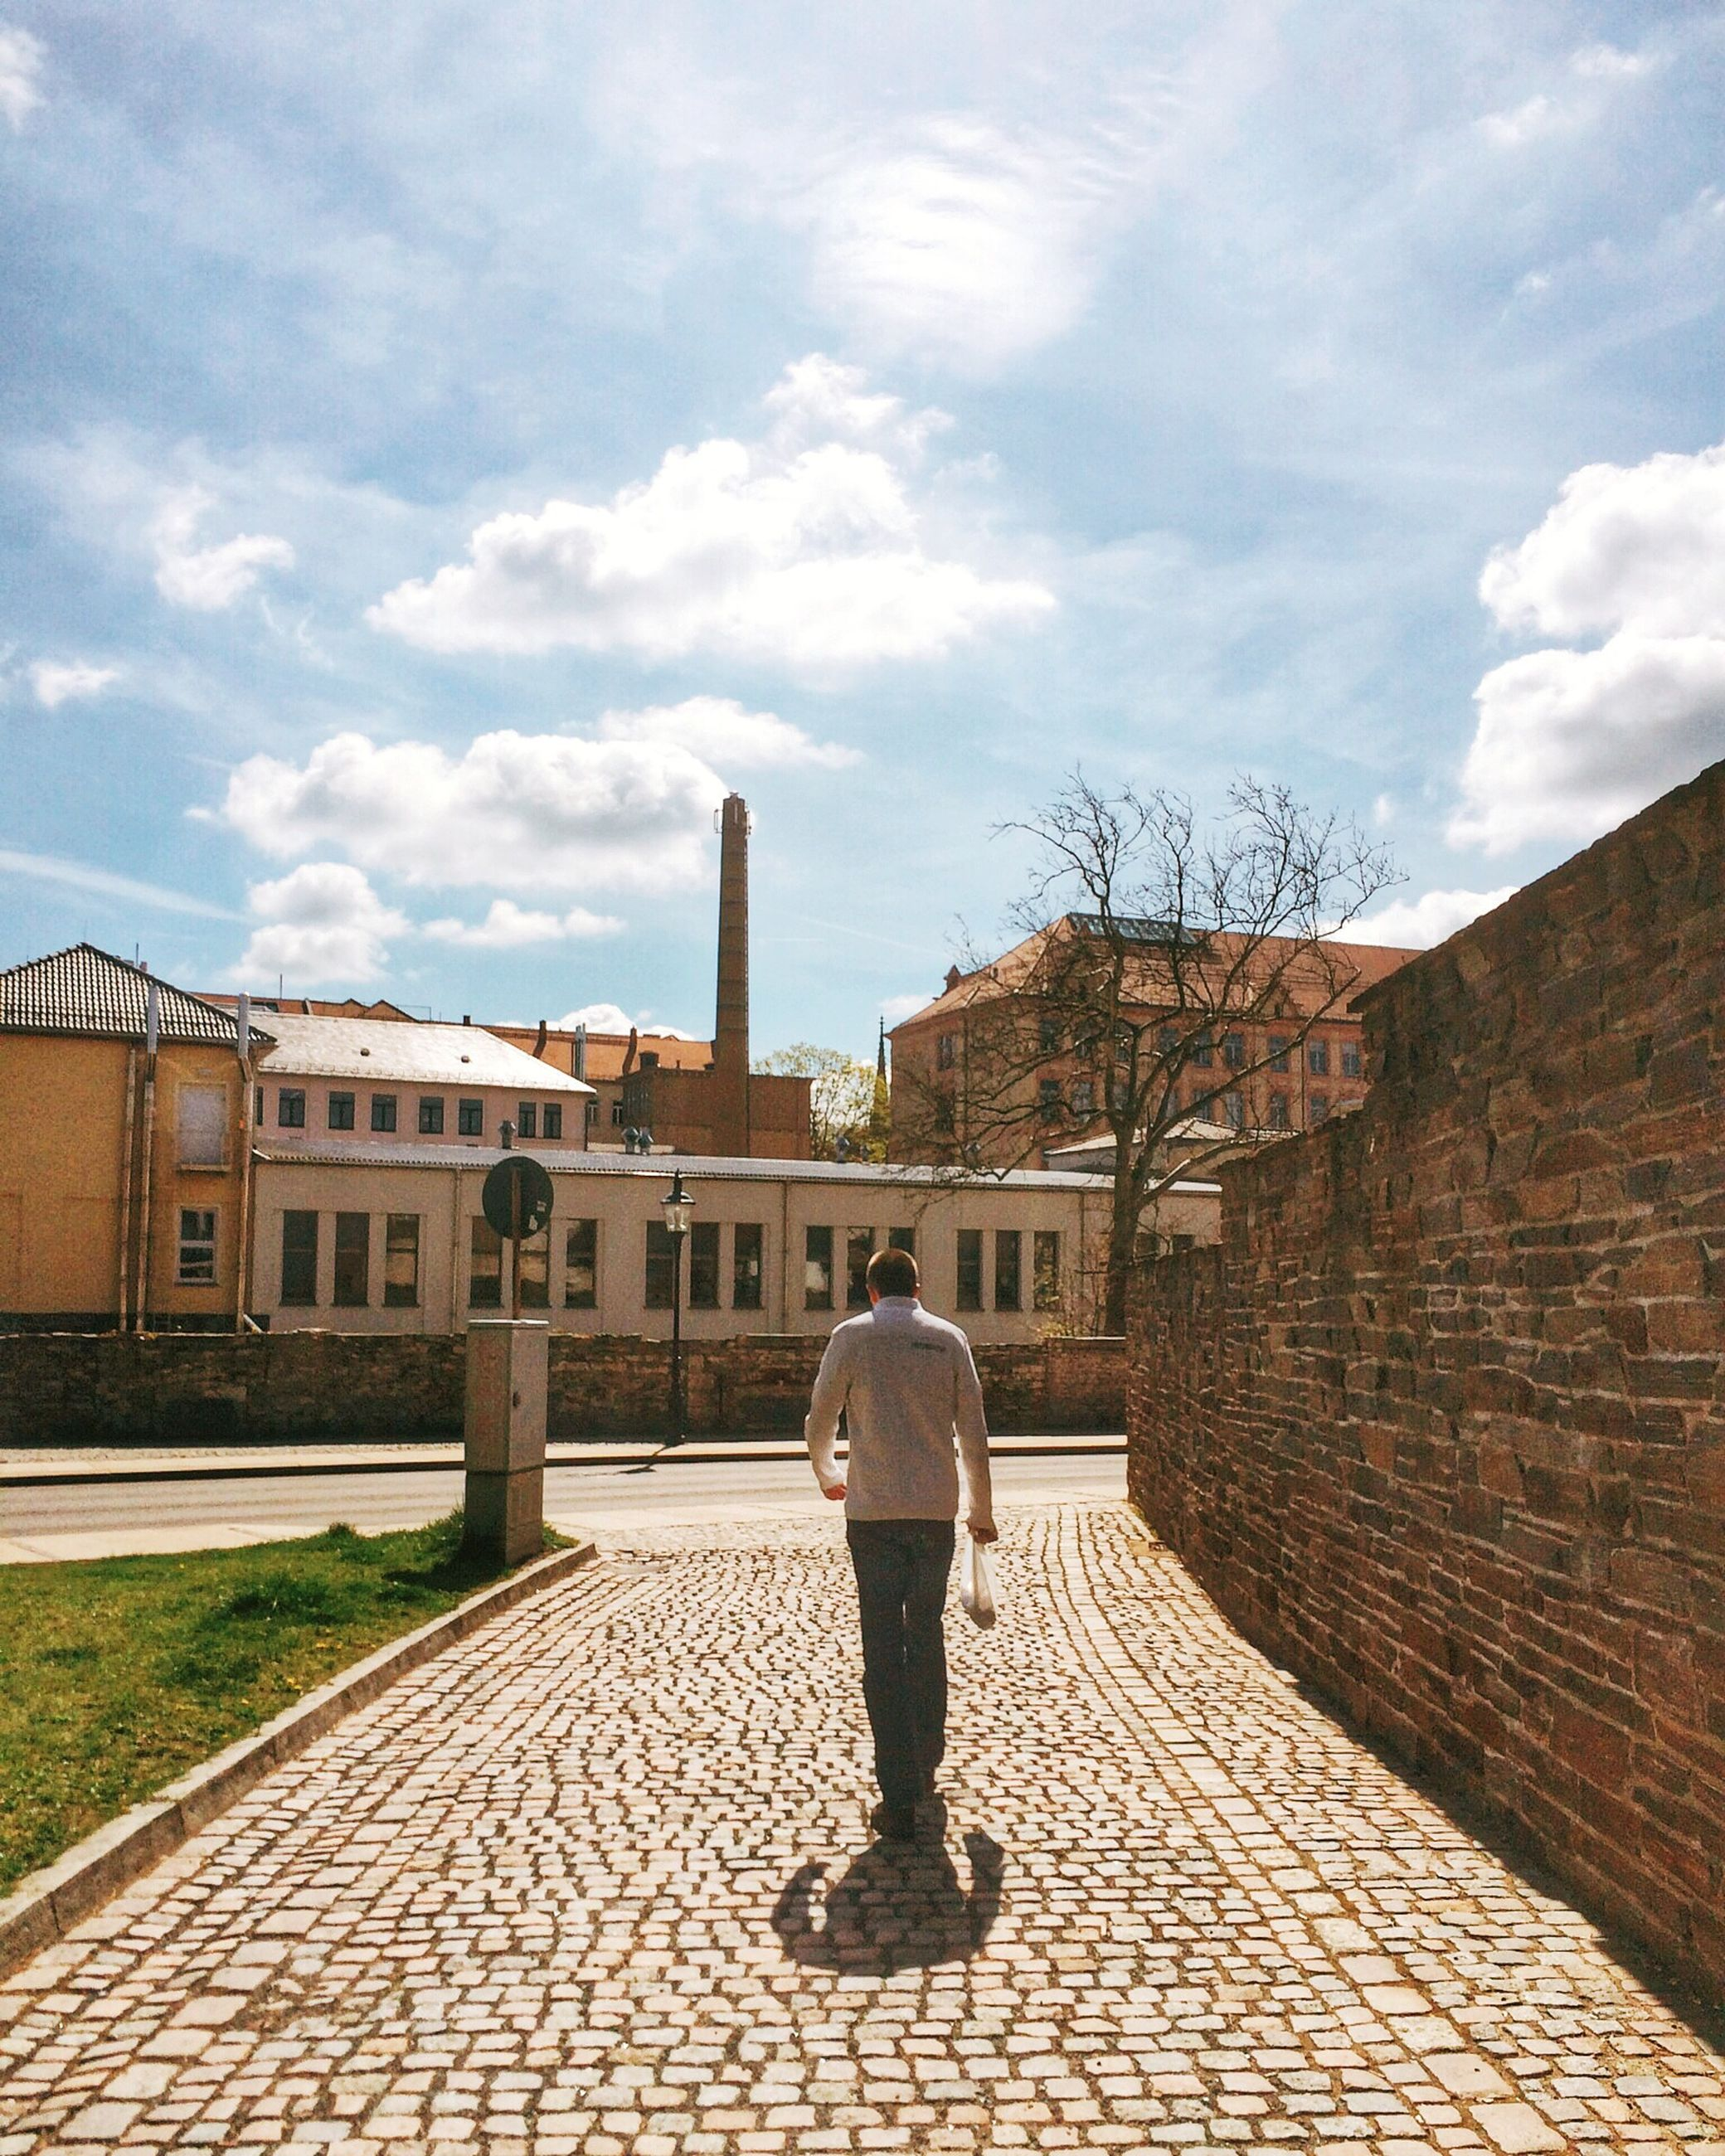 building exterior, architecture, built structure, full length, sky, rear view, lifestyles, casual clothing, leisure activity, cloud - sky, cobblestone, walking, city, standing, street, men, cloud, day